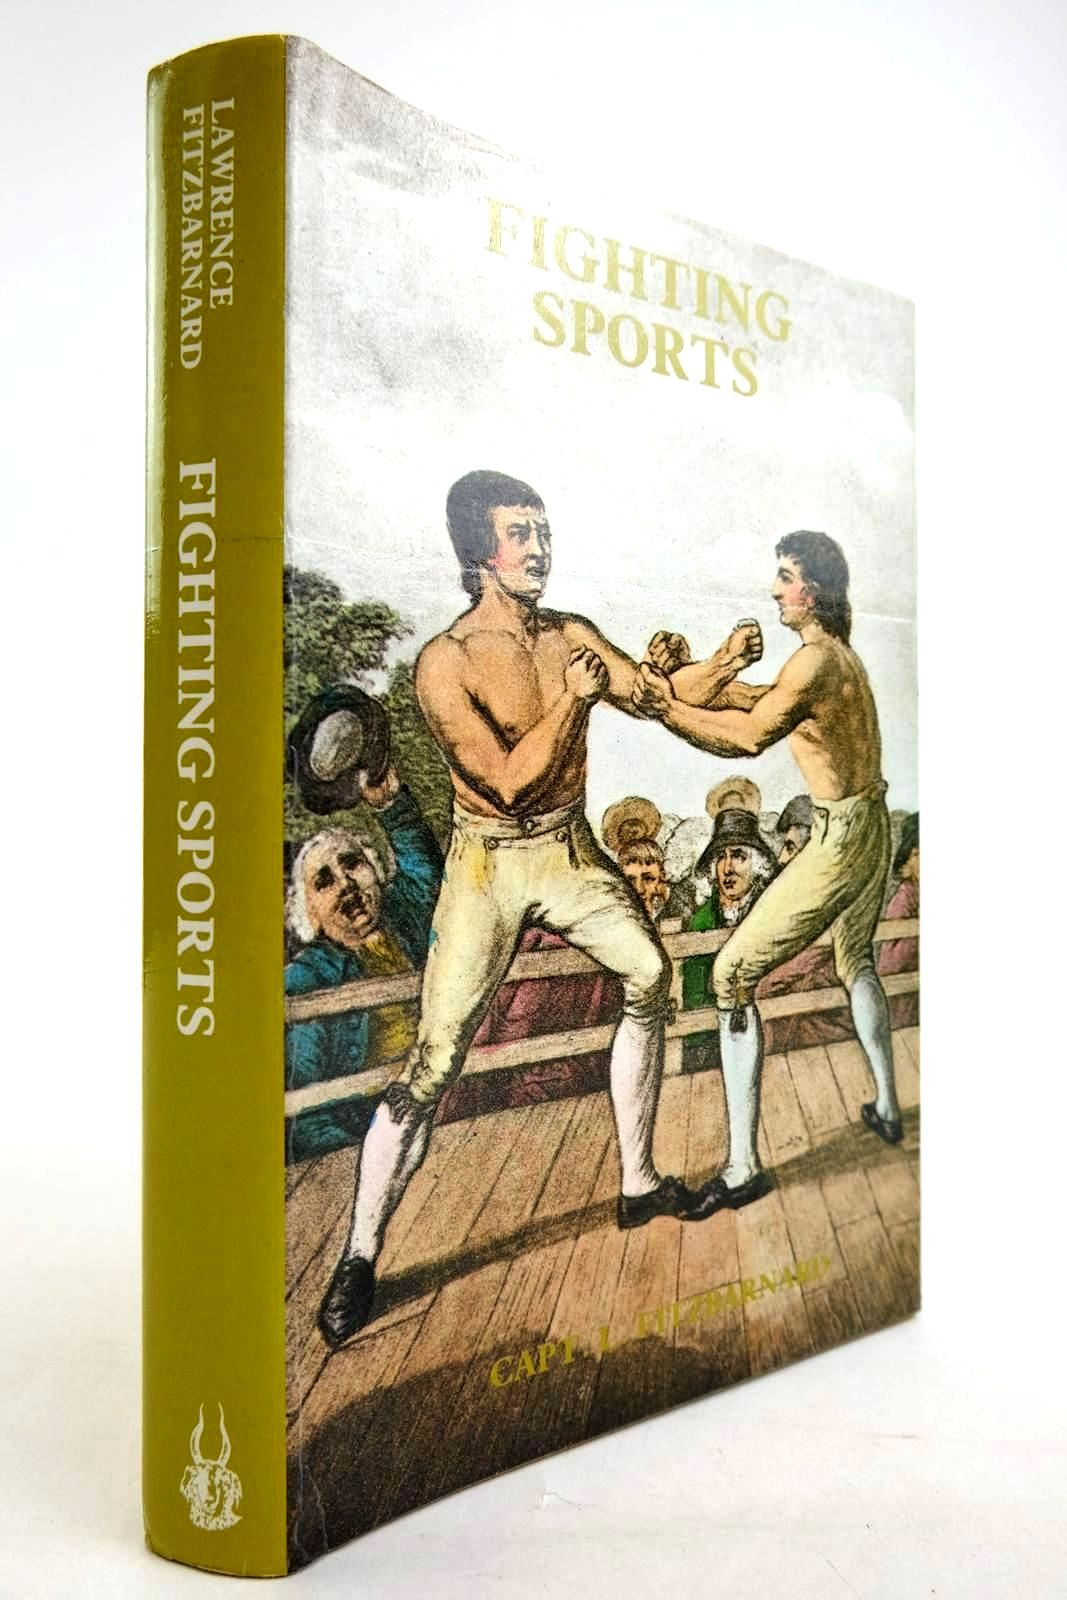 Photo of FIGHTING SPORTS written by Fitzbarnard, Capt. L. published by Triplegate (STOCK CODE: 2134293)  for sale by Stella & Rose's Books